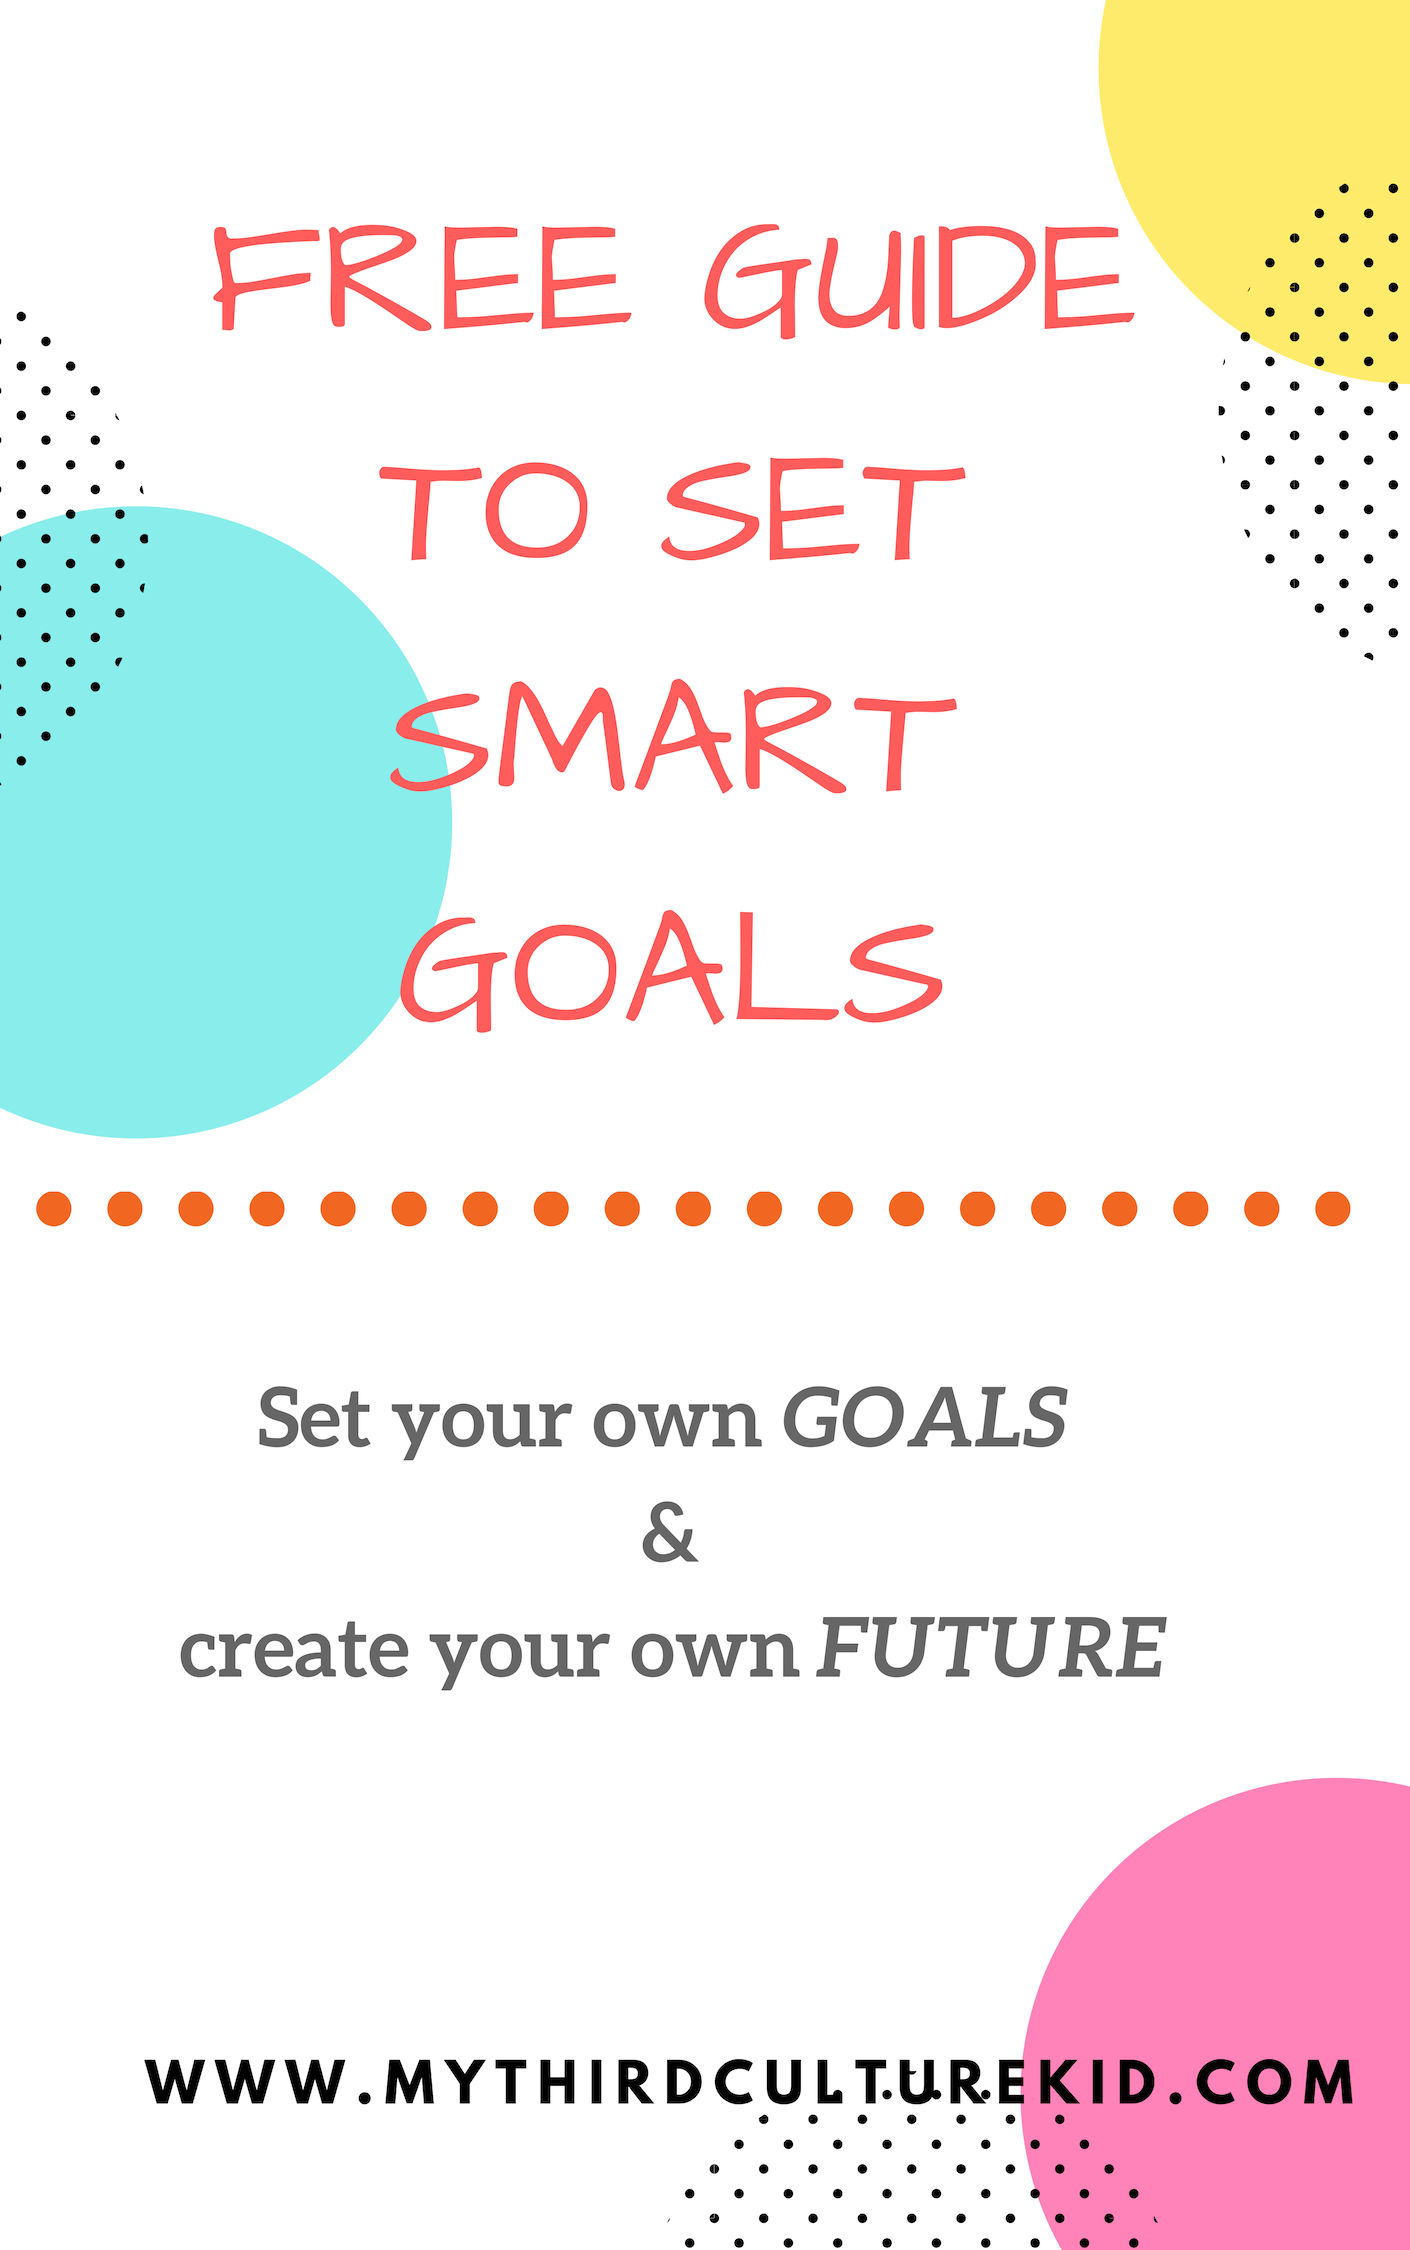 Free Guide To Set Your Own Goals Smartgoals